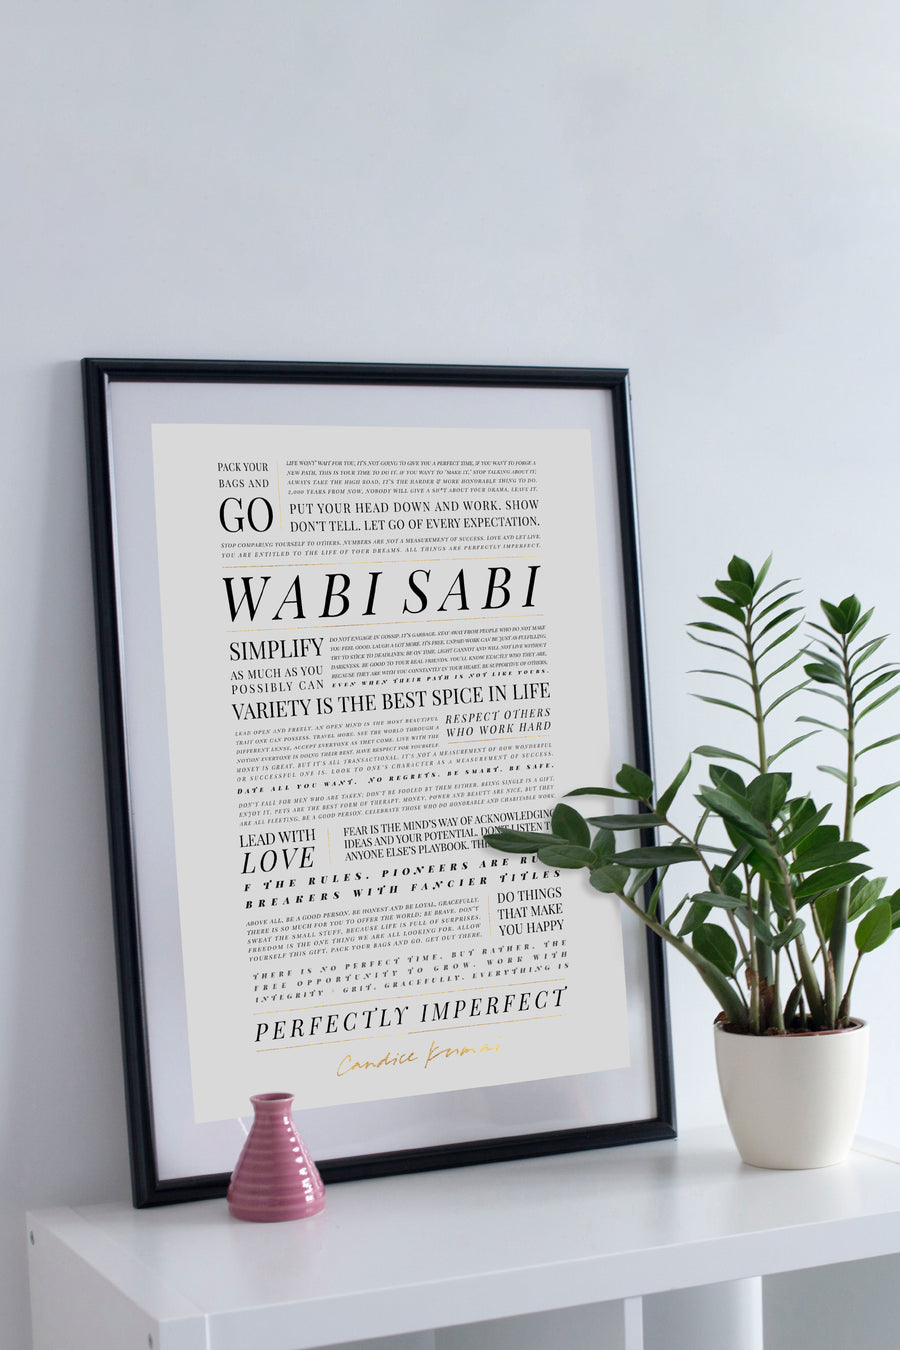 The Wabi Sabi Manifesto